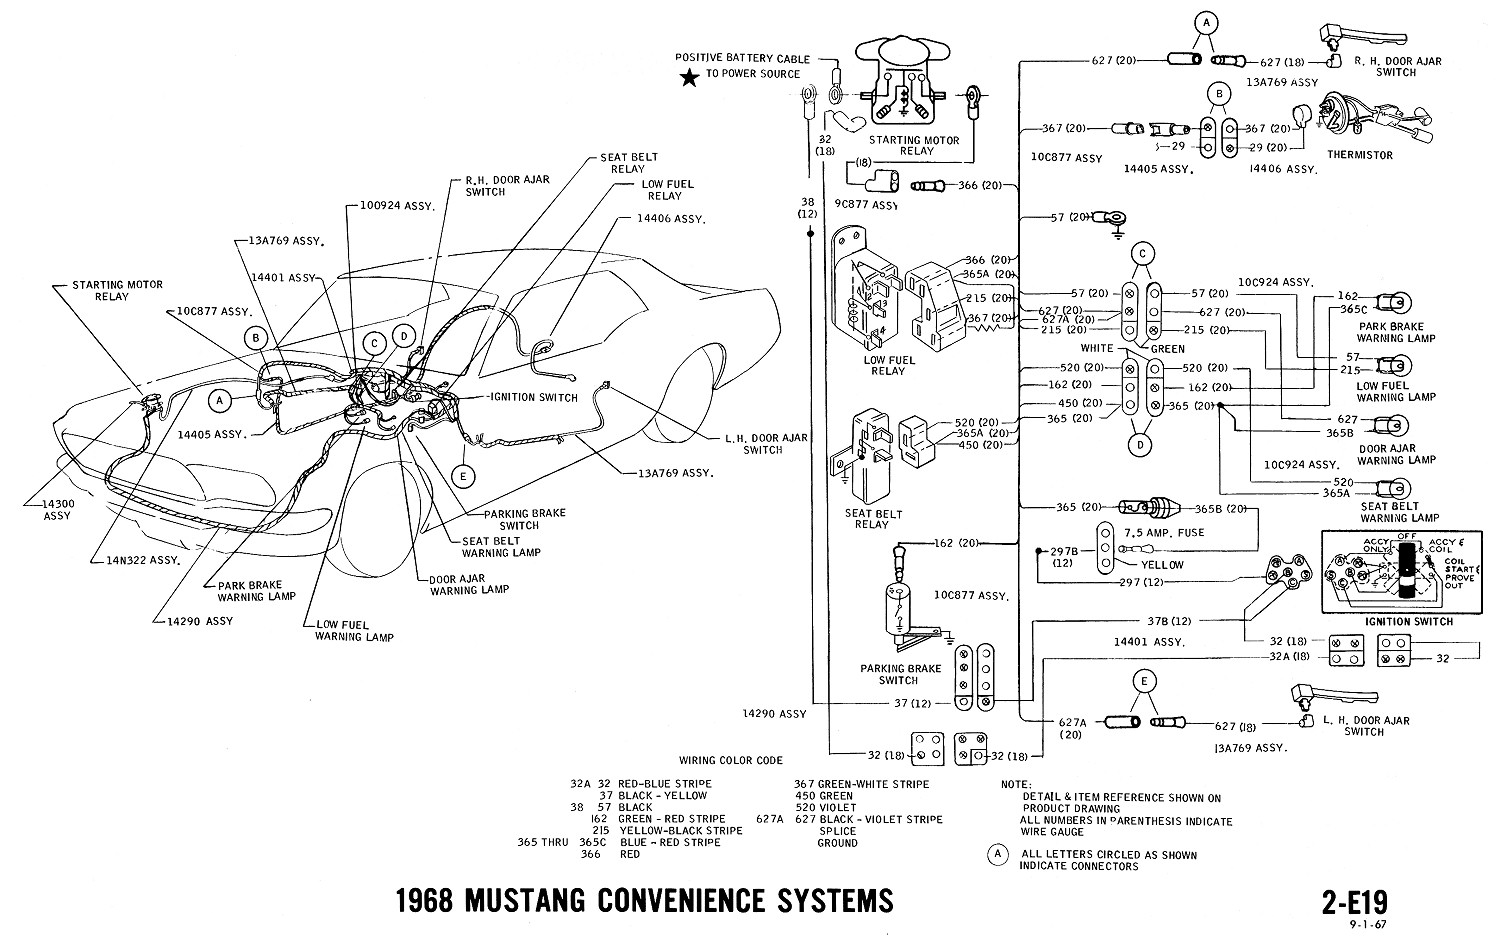 mercury radio wiring diagram with 1968 Mustang Wiring Diagram Vacuum Schematics on RepairGuideContent likewise 13497 Manual  plete Electrical Schematic Free Download 1969 Mercury Cougar additionally 2000 Jeep Grand Cherokee Laredo Engine Diagram additionally Wiper Motor Wiring Diagram For 1995 Ford F150 in addition 4 Wire Ignition Switch Diagram.